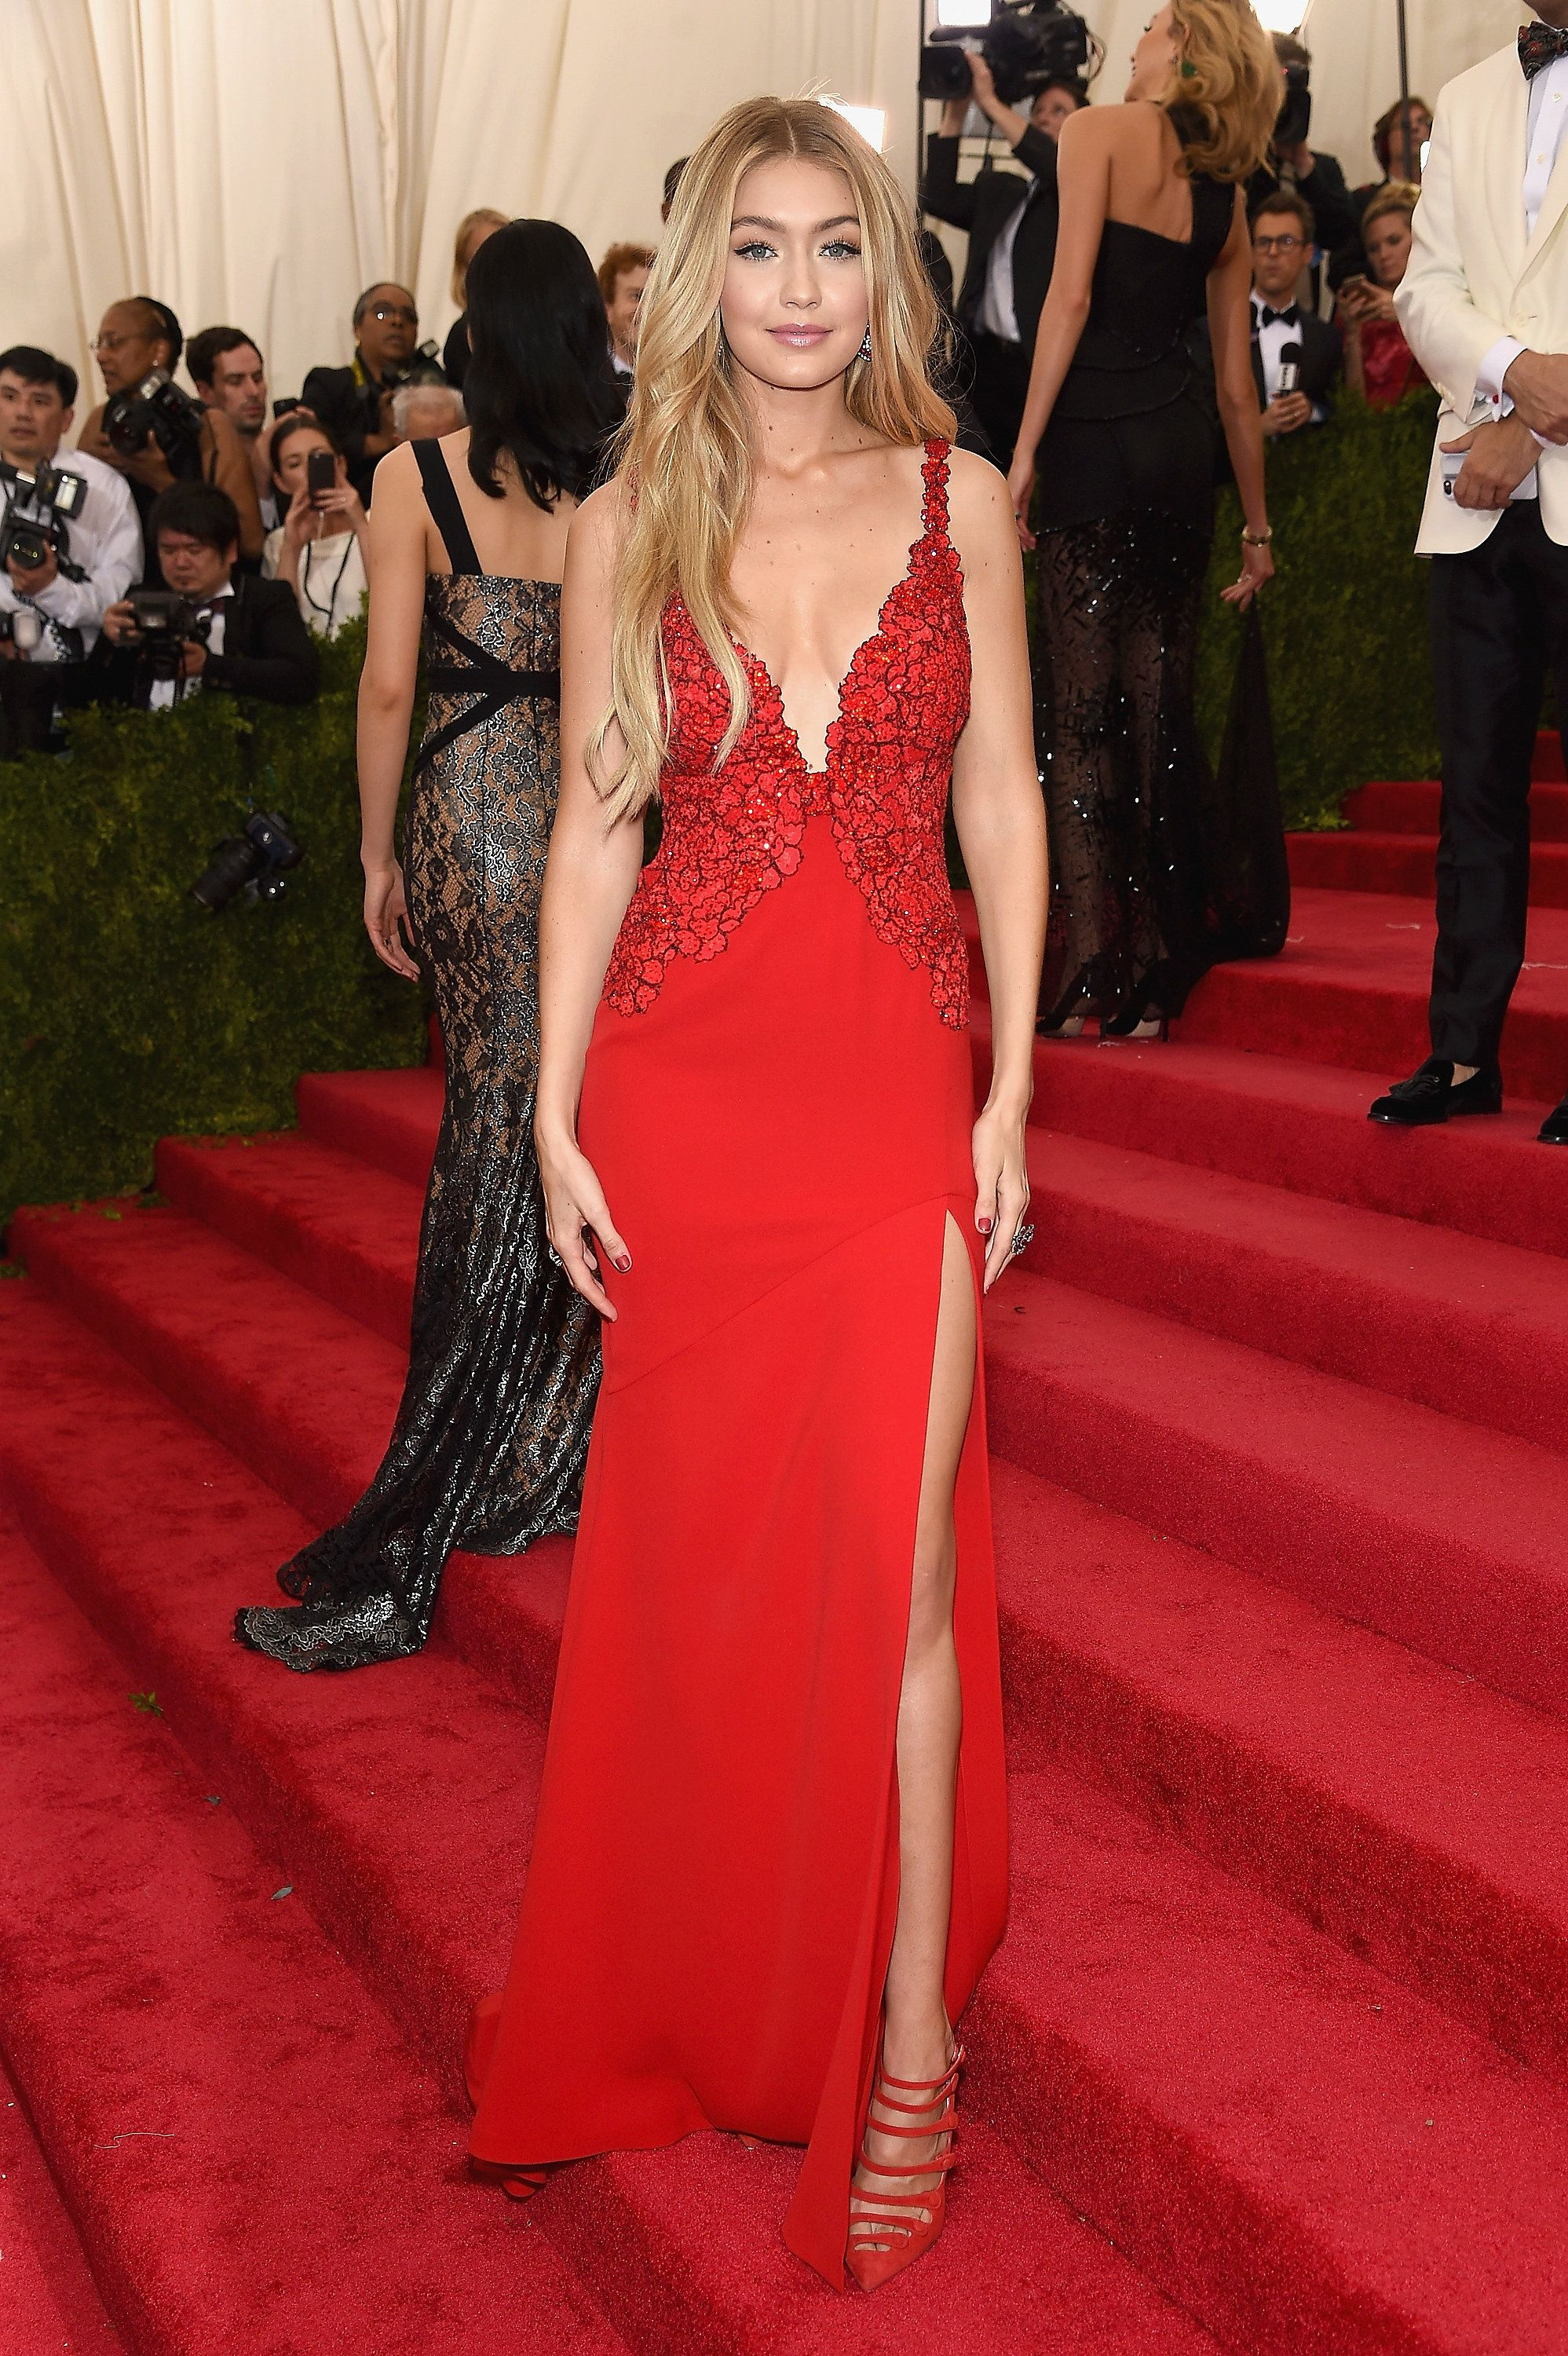 Met Gala 2015 Fashion Live From The Red Carpet Met Gala Red Carpet Nice Dresses Red Gowns [ 3000 x 1997 Pixel ]